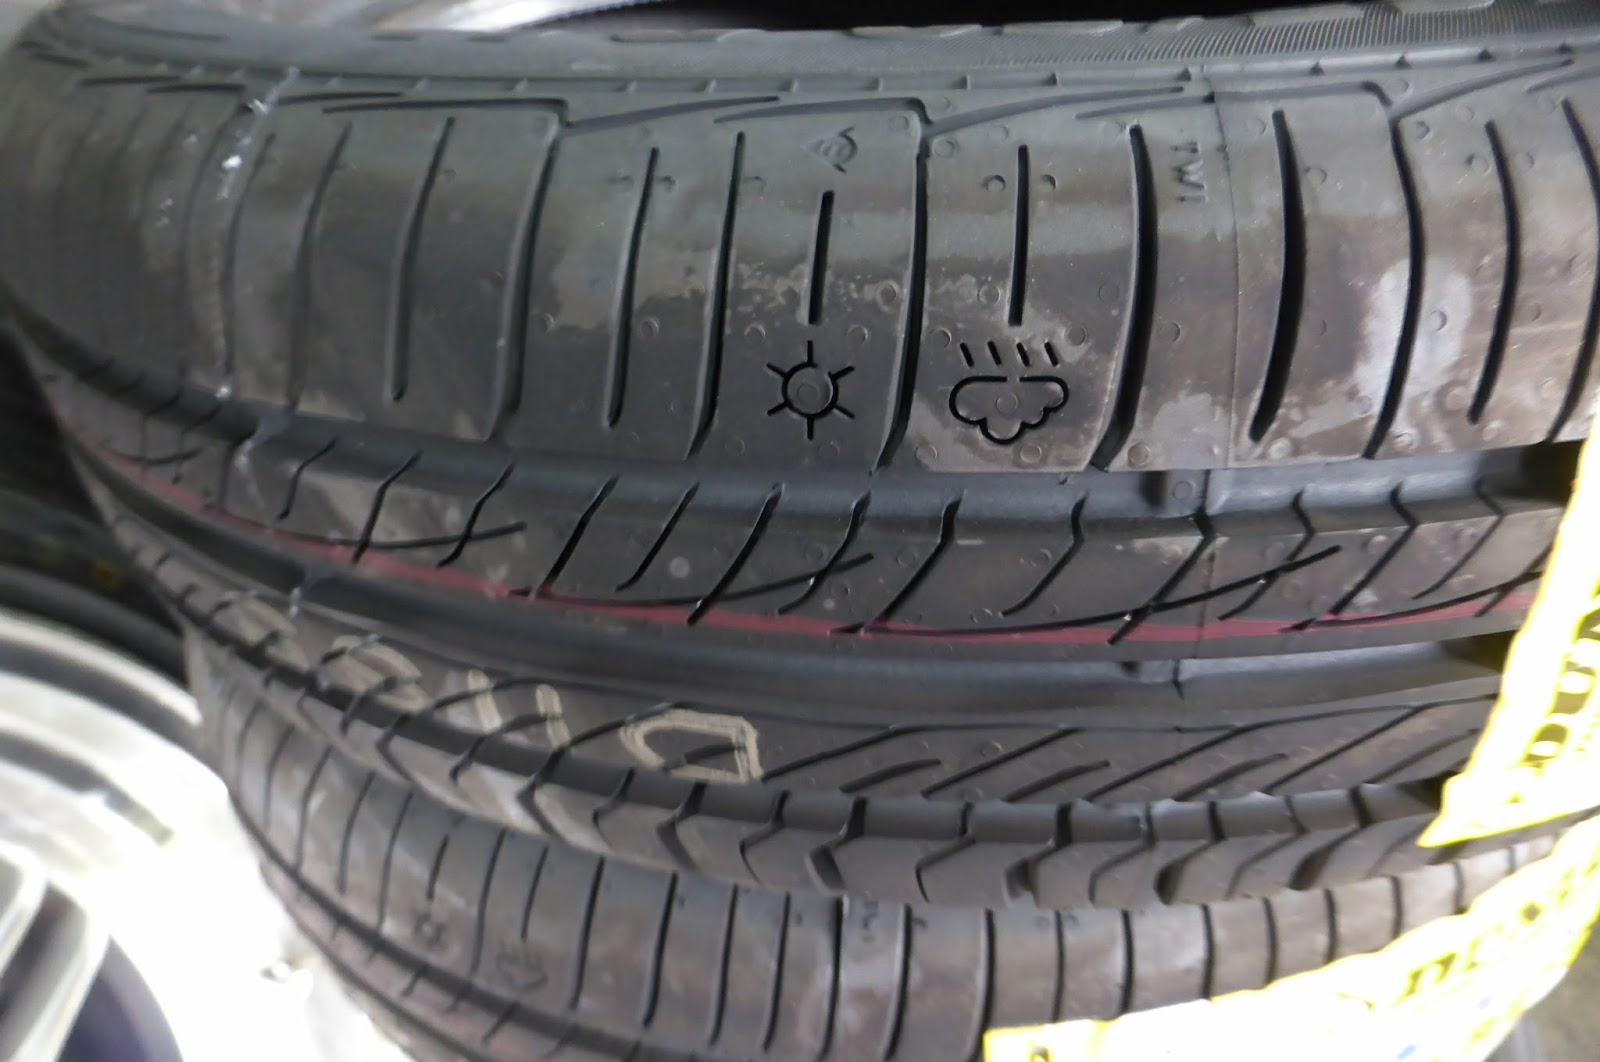 Otoreview My Otomobil Review Dunlop Sp Sport J5 Tyres 10000km Report